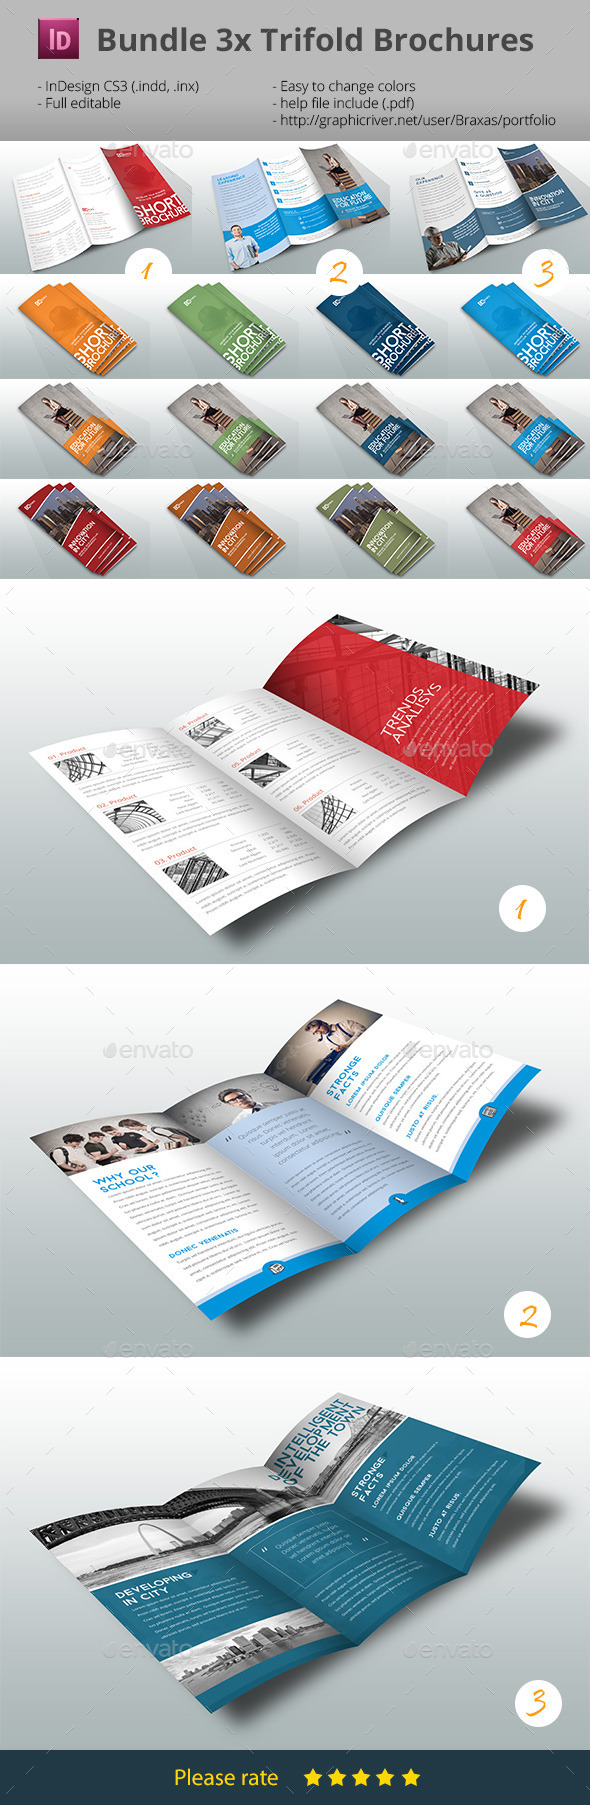 Bundle Trifold Brochure Multicolor - Informational Brochures